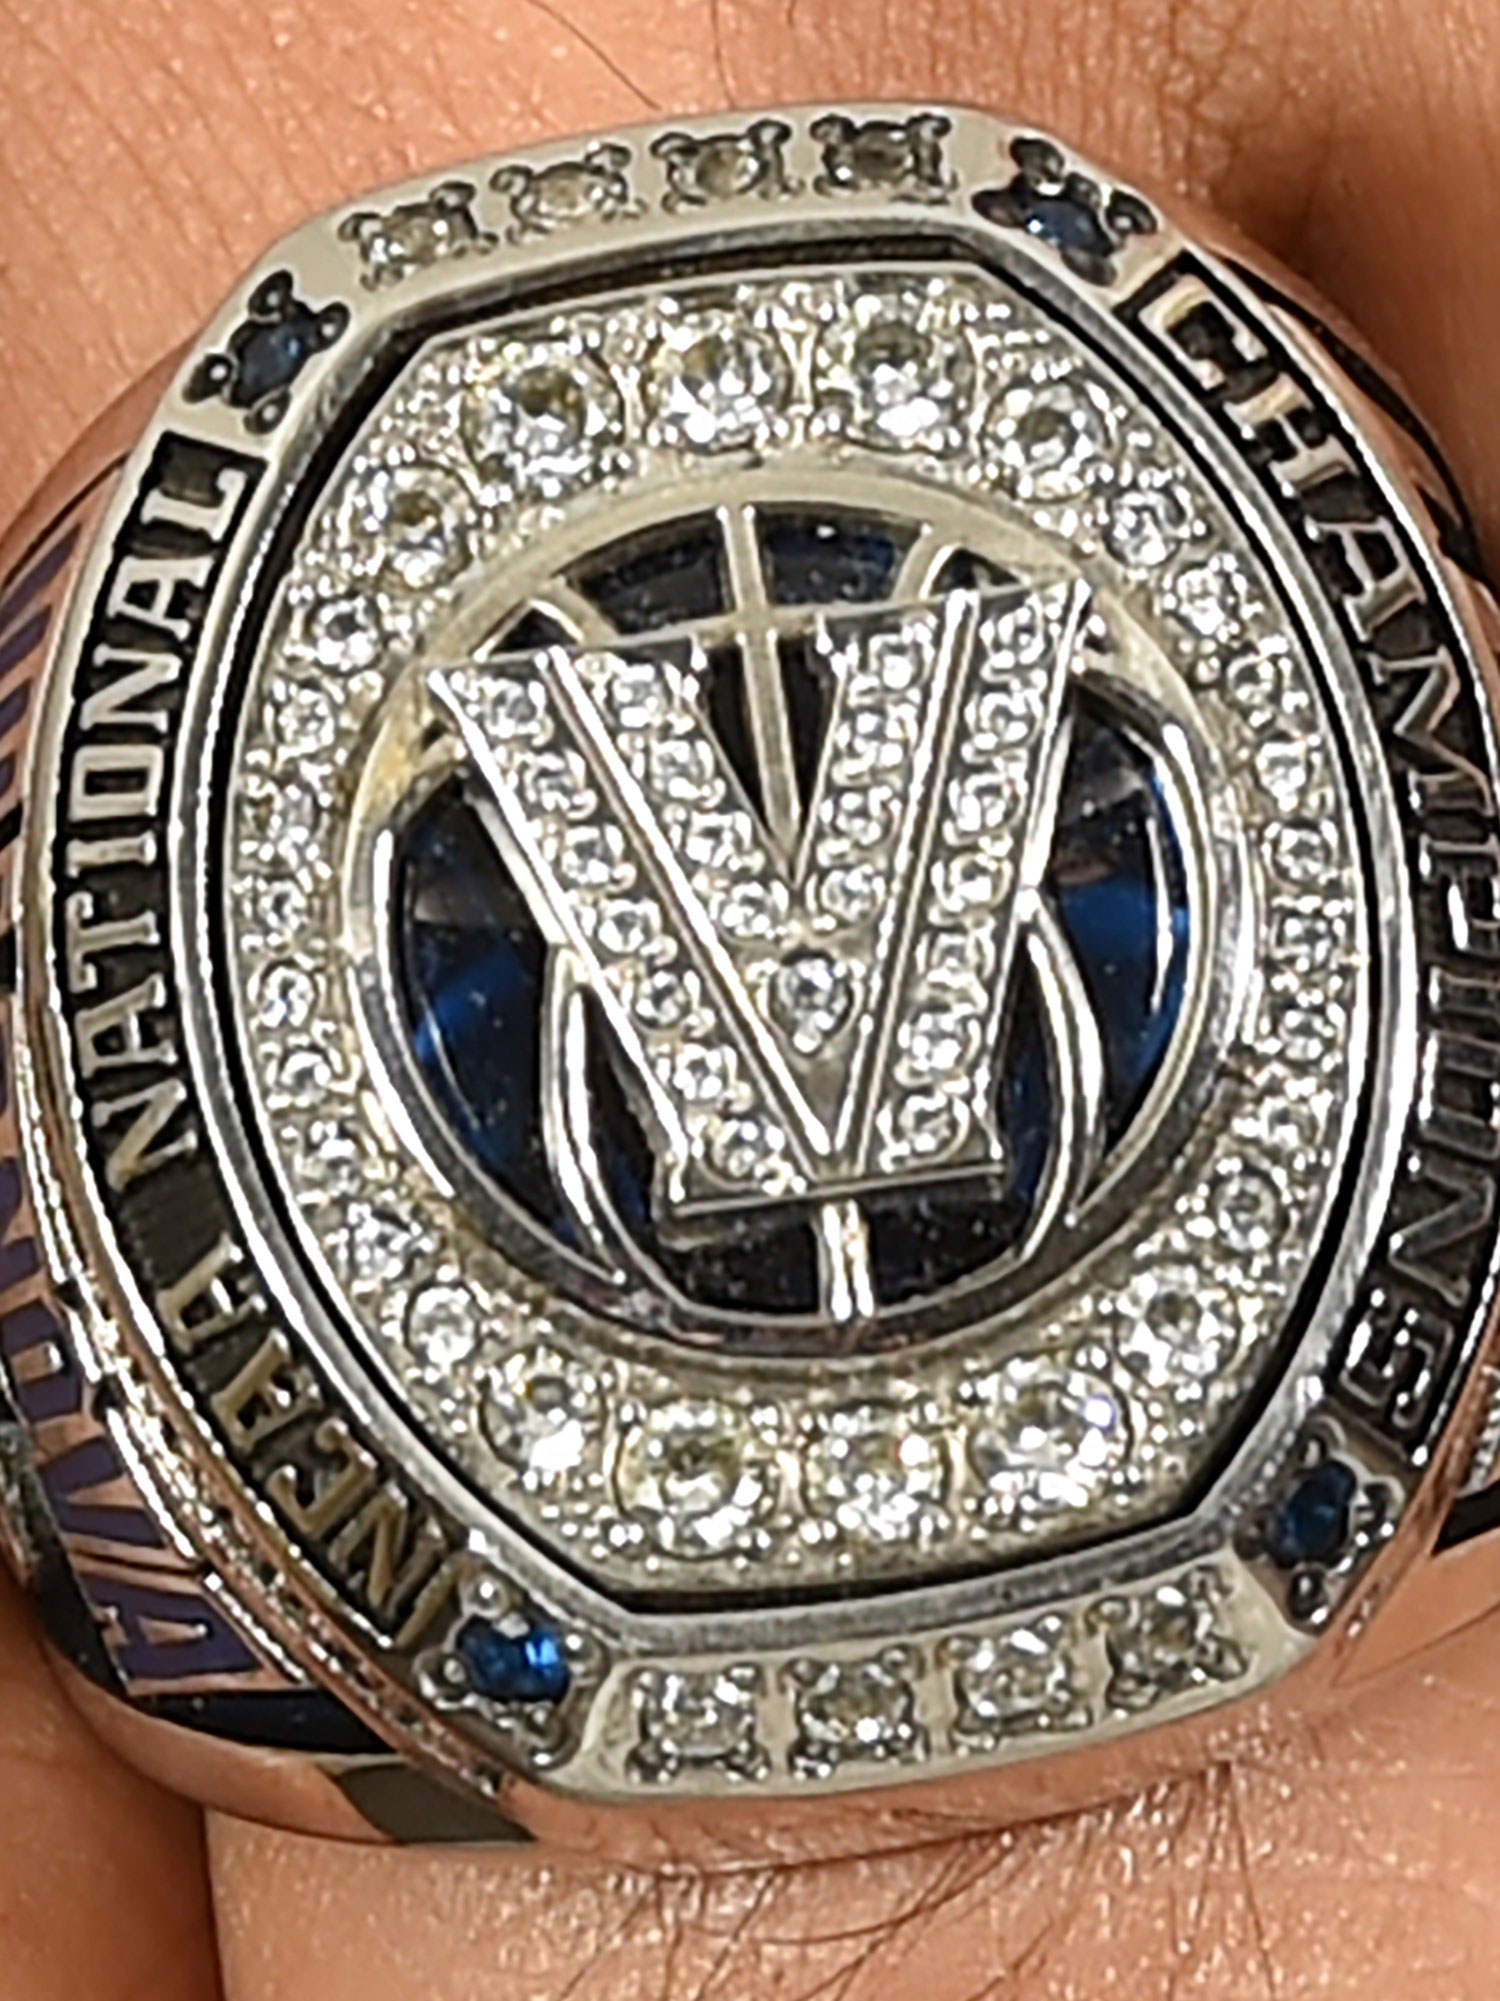 heels news ncaa athletics unc champs rings tar kljcaljqwqpqftm for